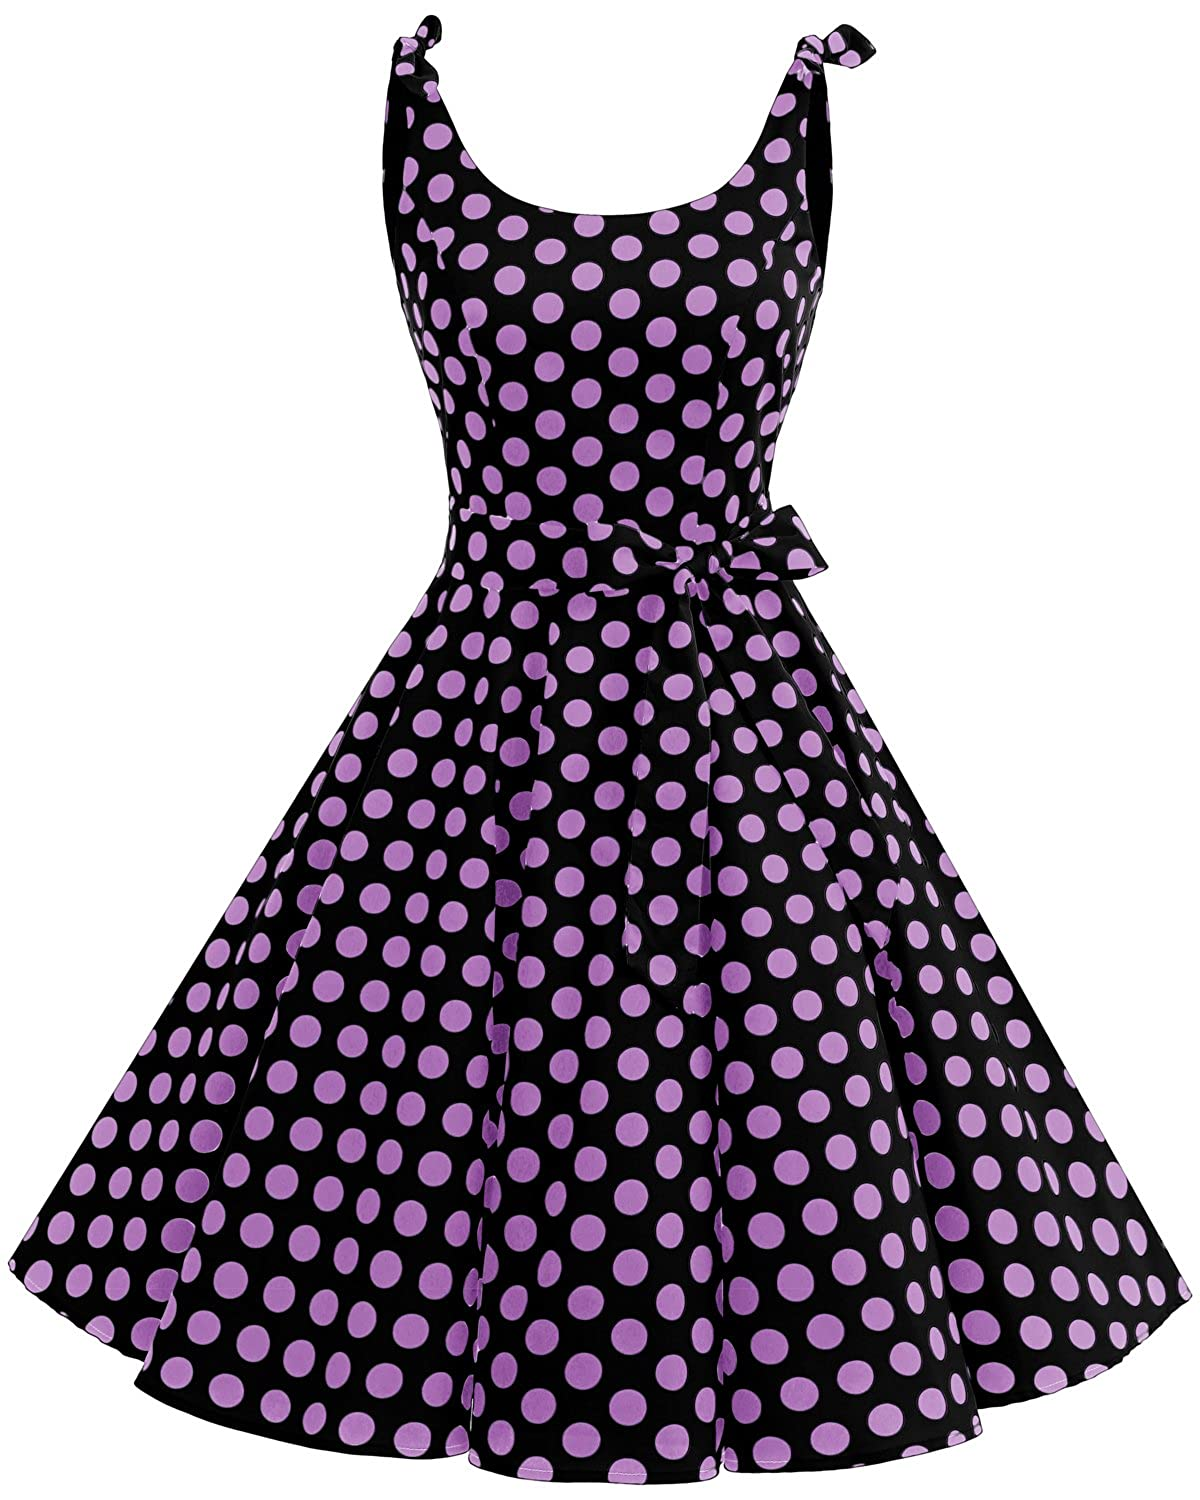 TALLA 3XL. Bbonlinedress Vestidos de 1950 Estampado Vintage Retro Cóctel Rockabilly con Lazo Black Purple Bdot 3XL